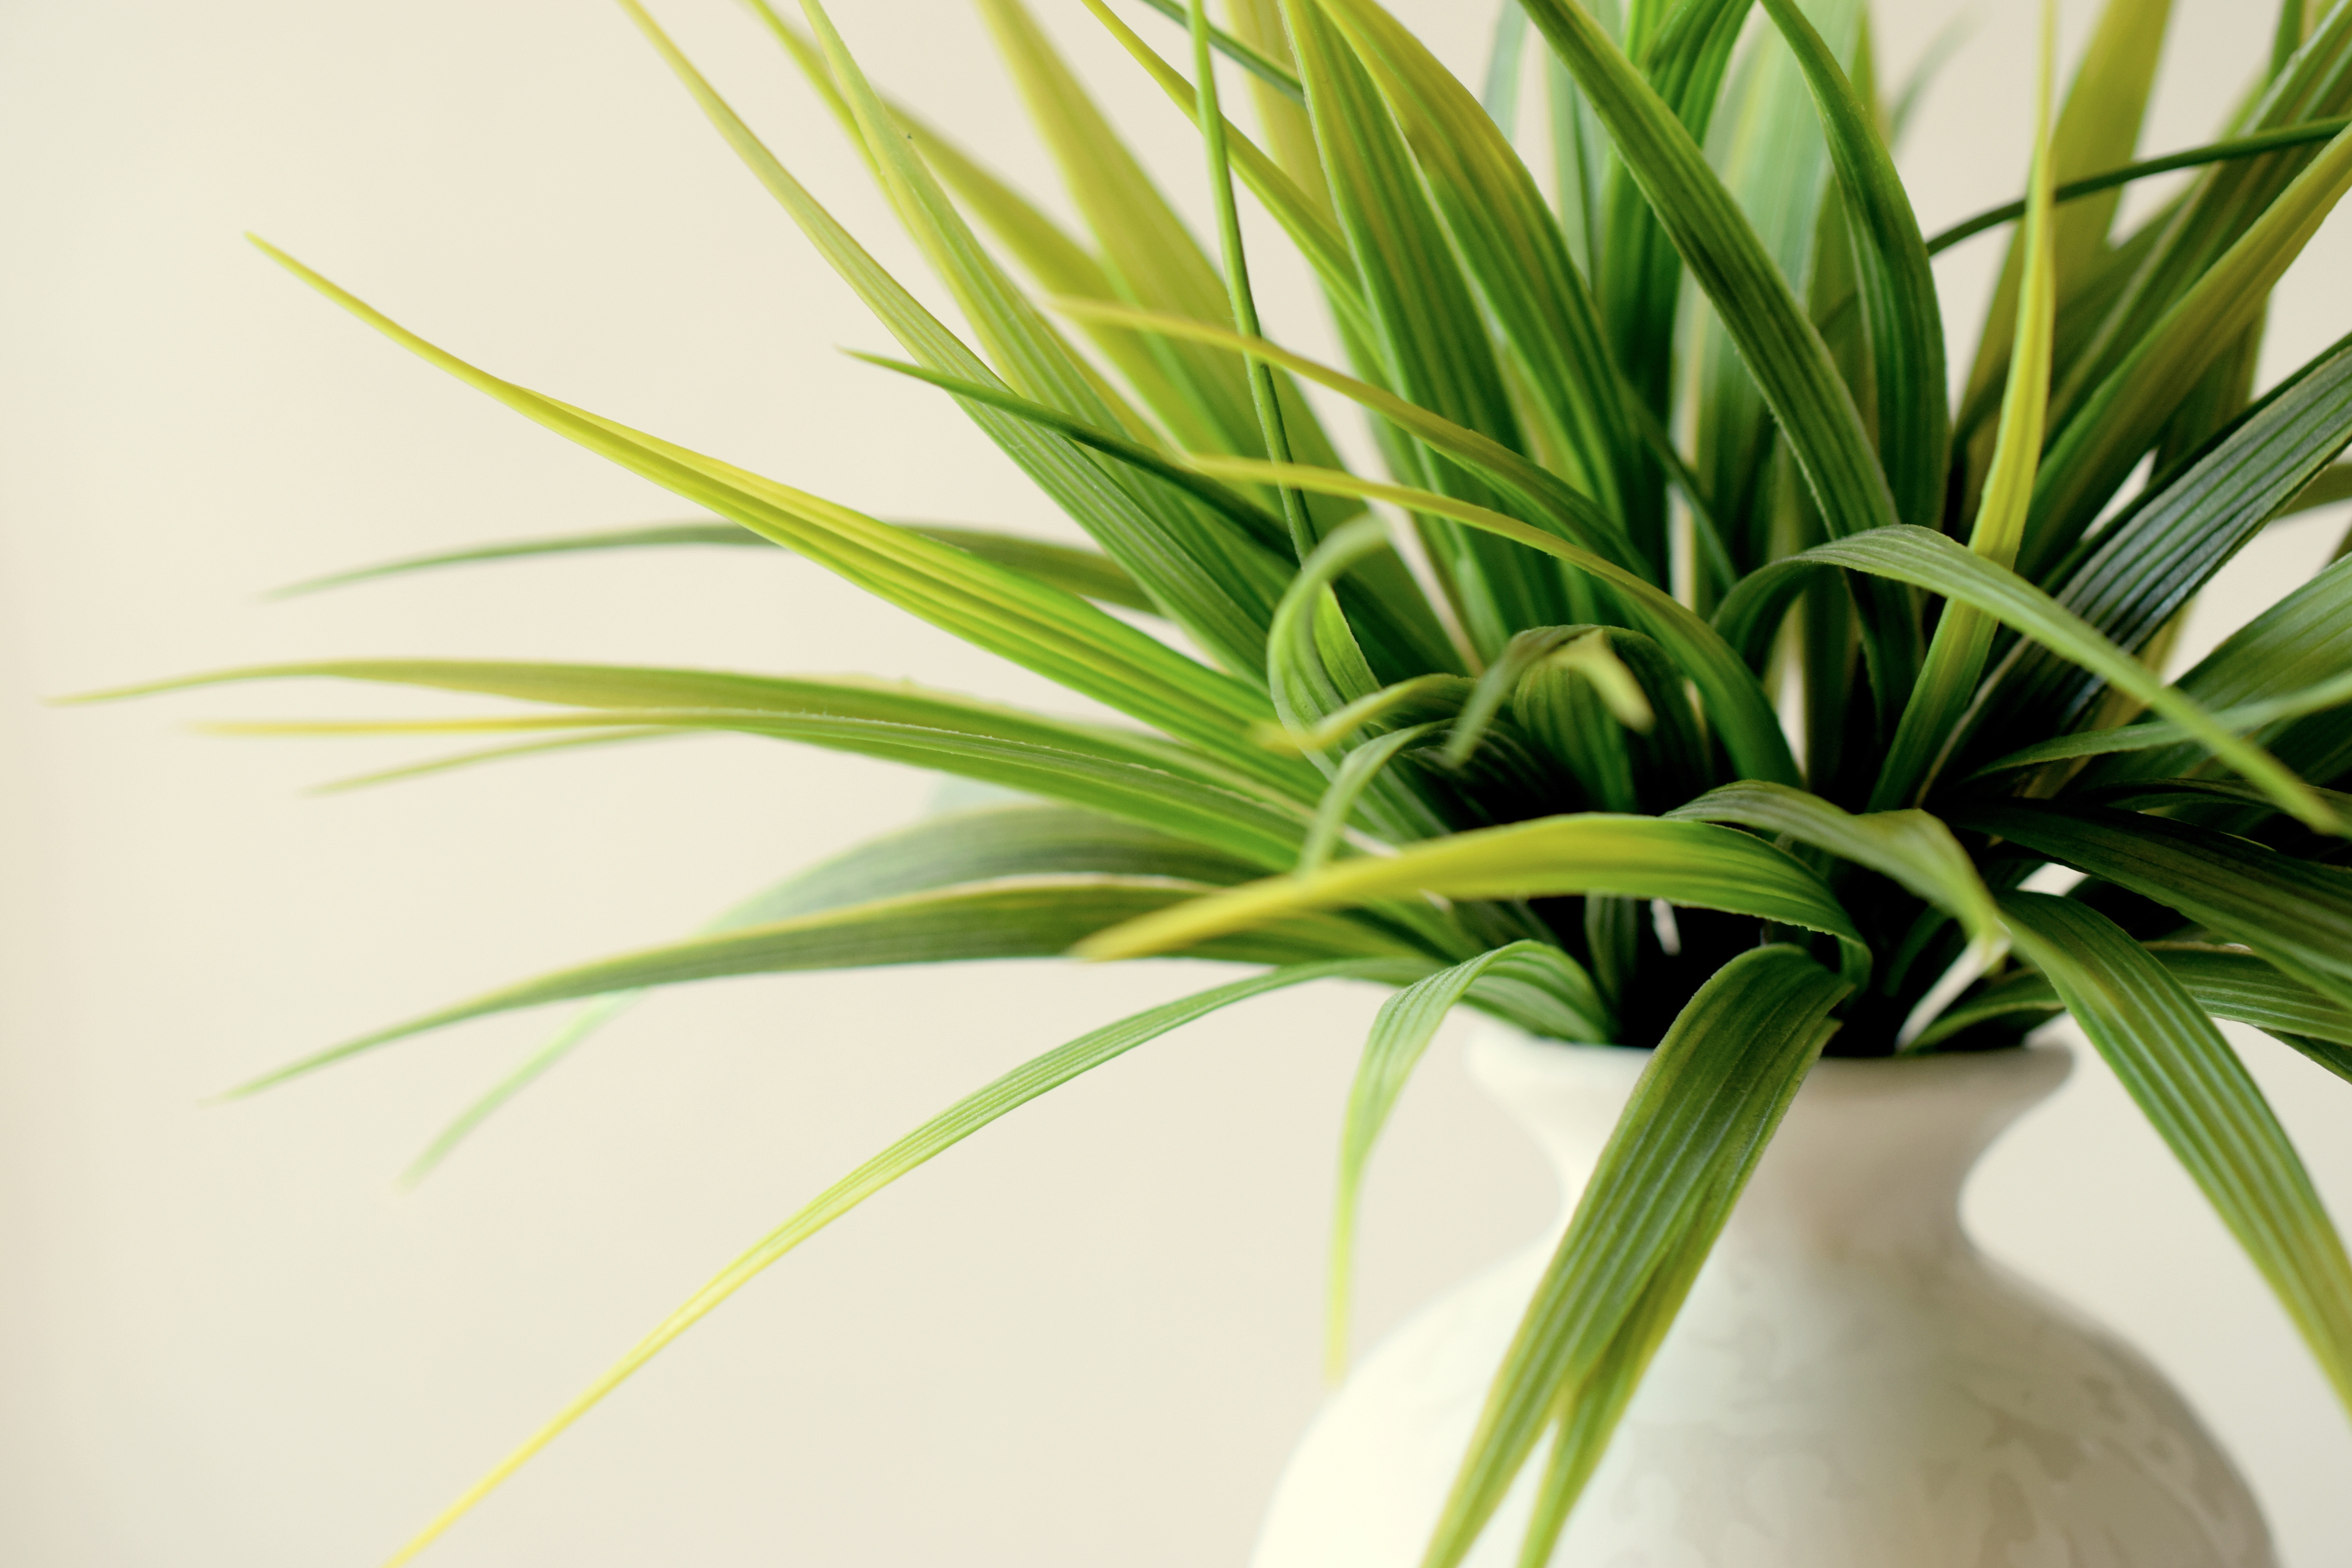 94797 download wallpaper Miscellanea, Miscellaneous, Plant, Vase, Leaves screensavers and pictures for free